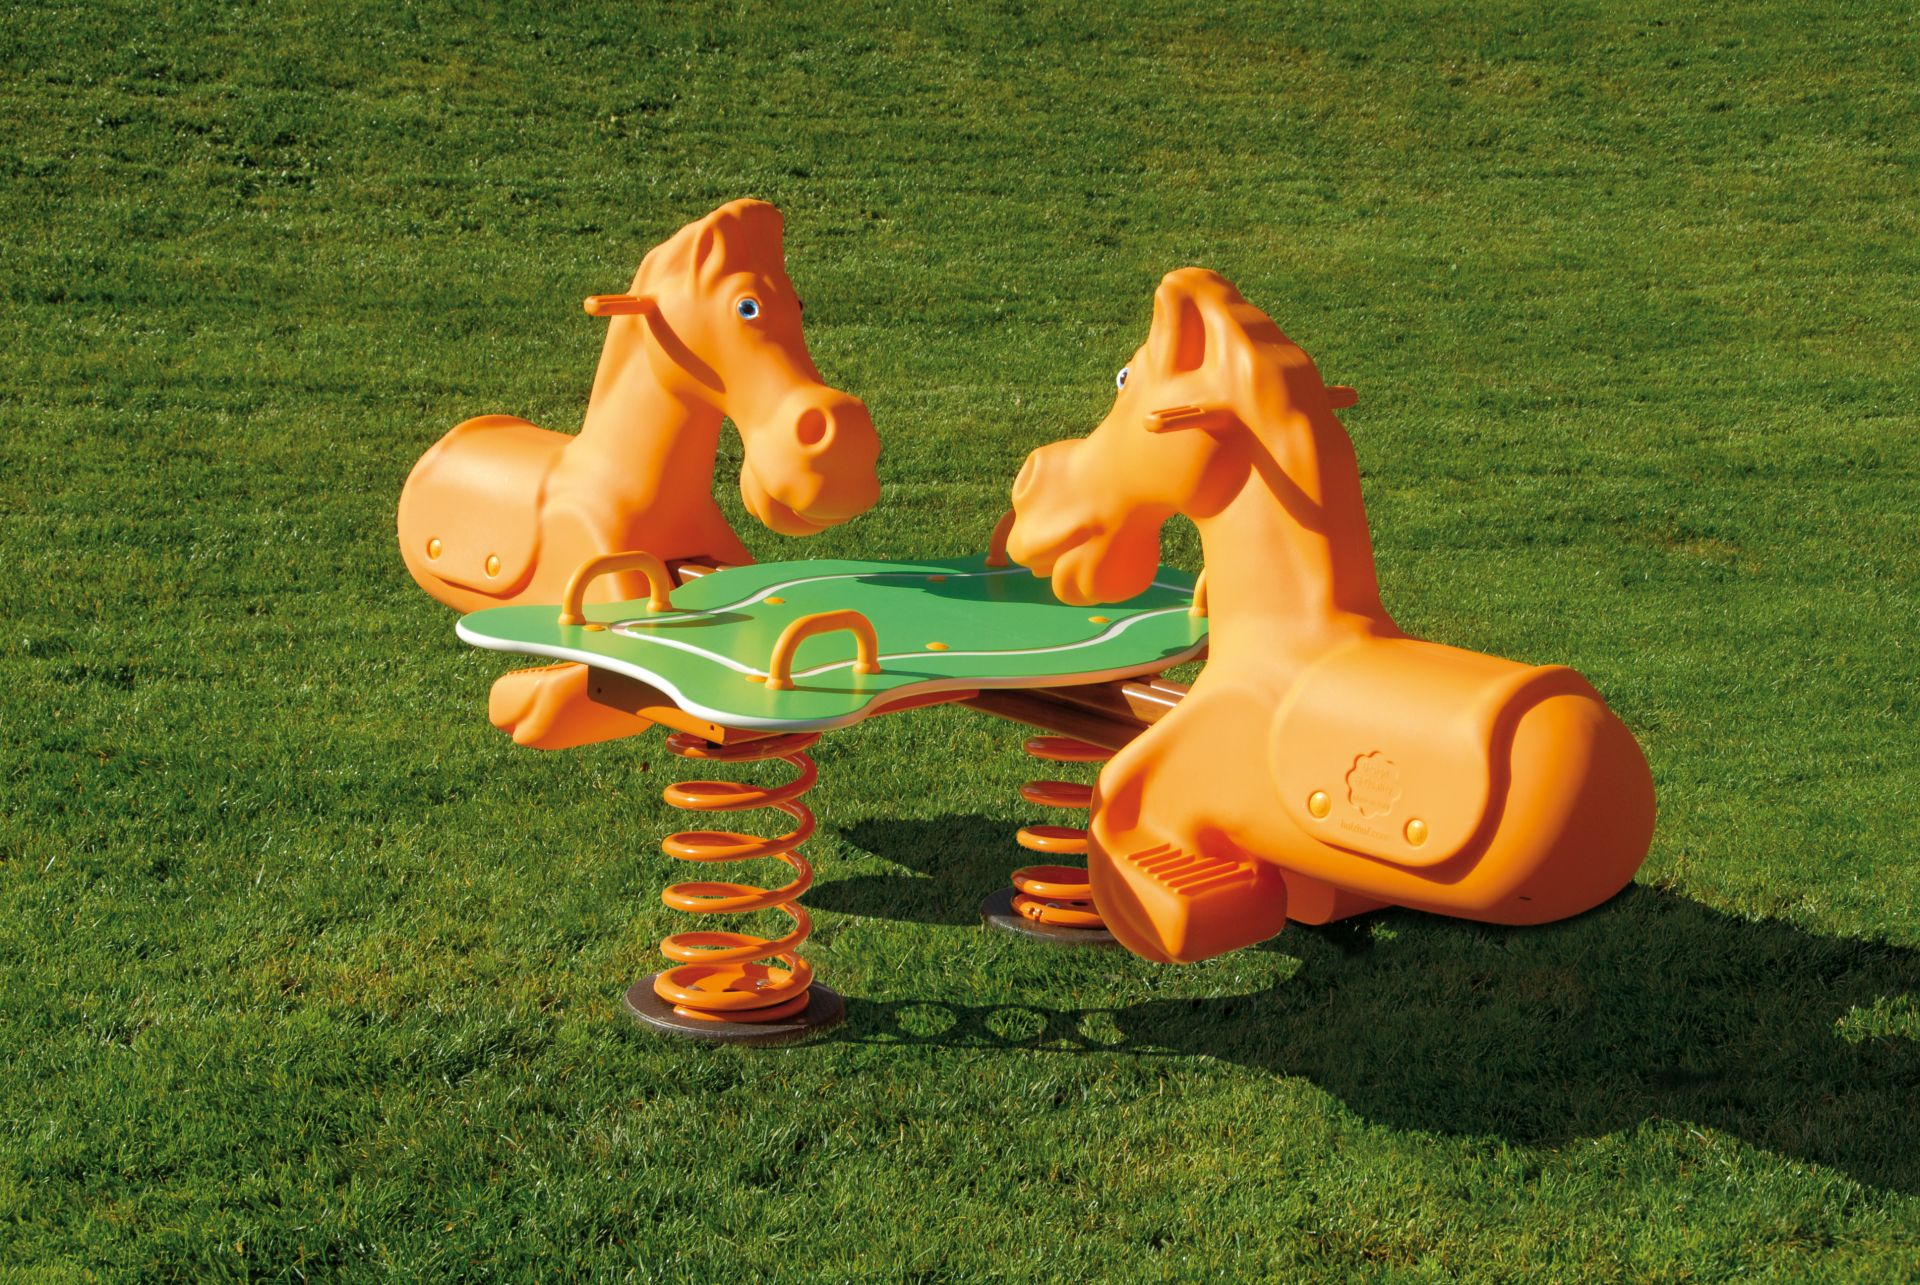 Holzhof Spring riders Rodeo spring rider, 4 seats with basement for underground installation